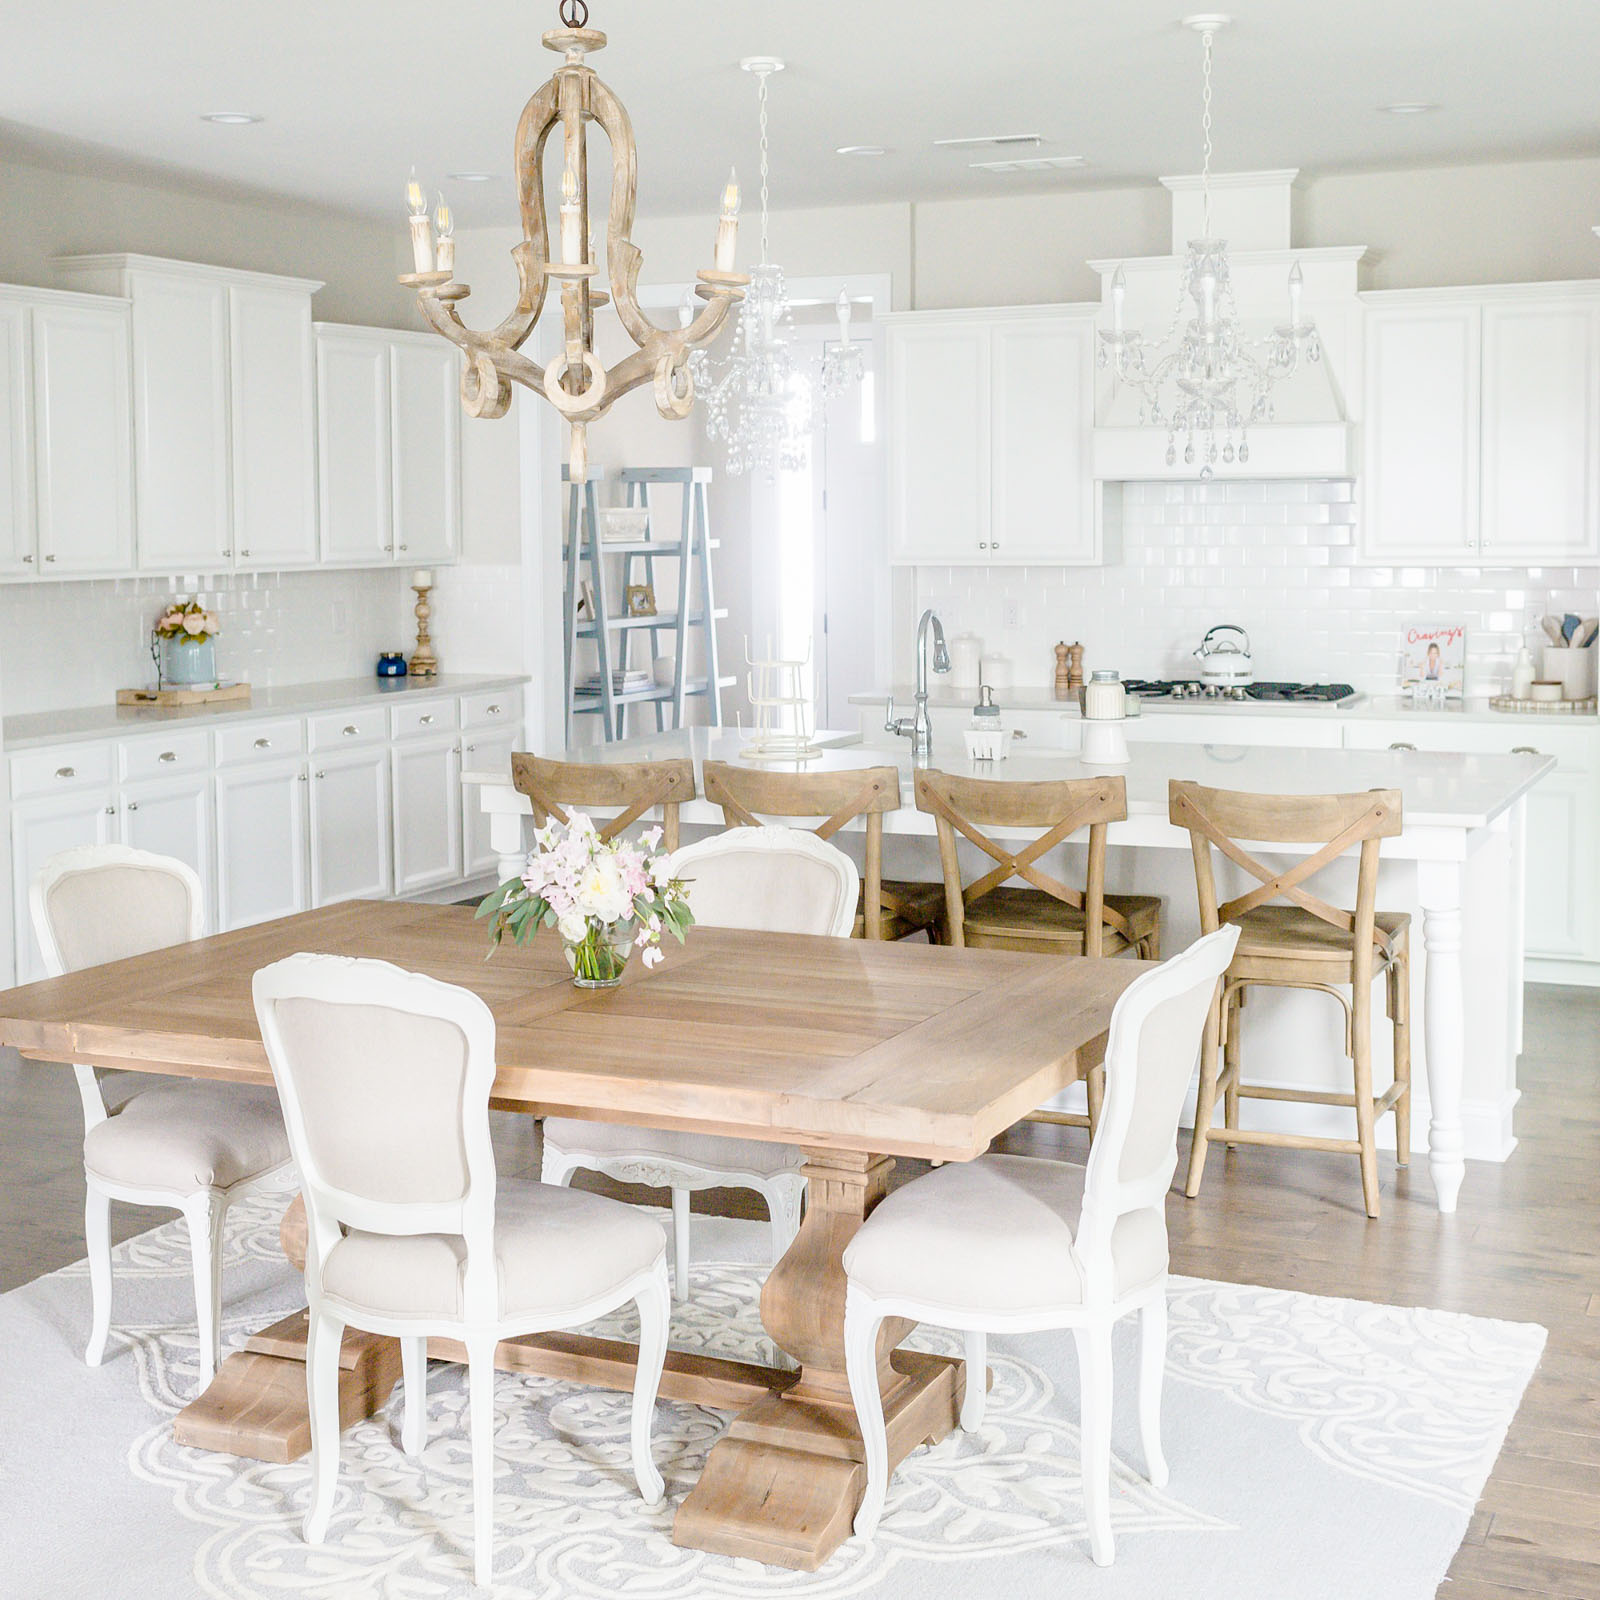 Home Decor White: How To Keep Your House White